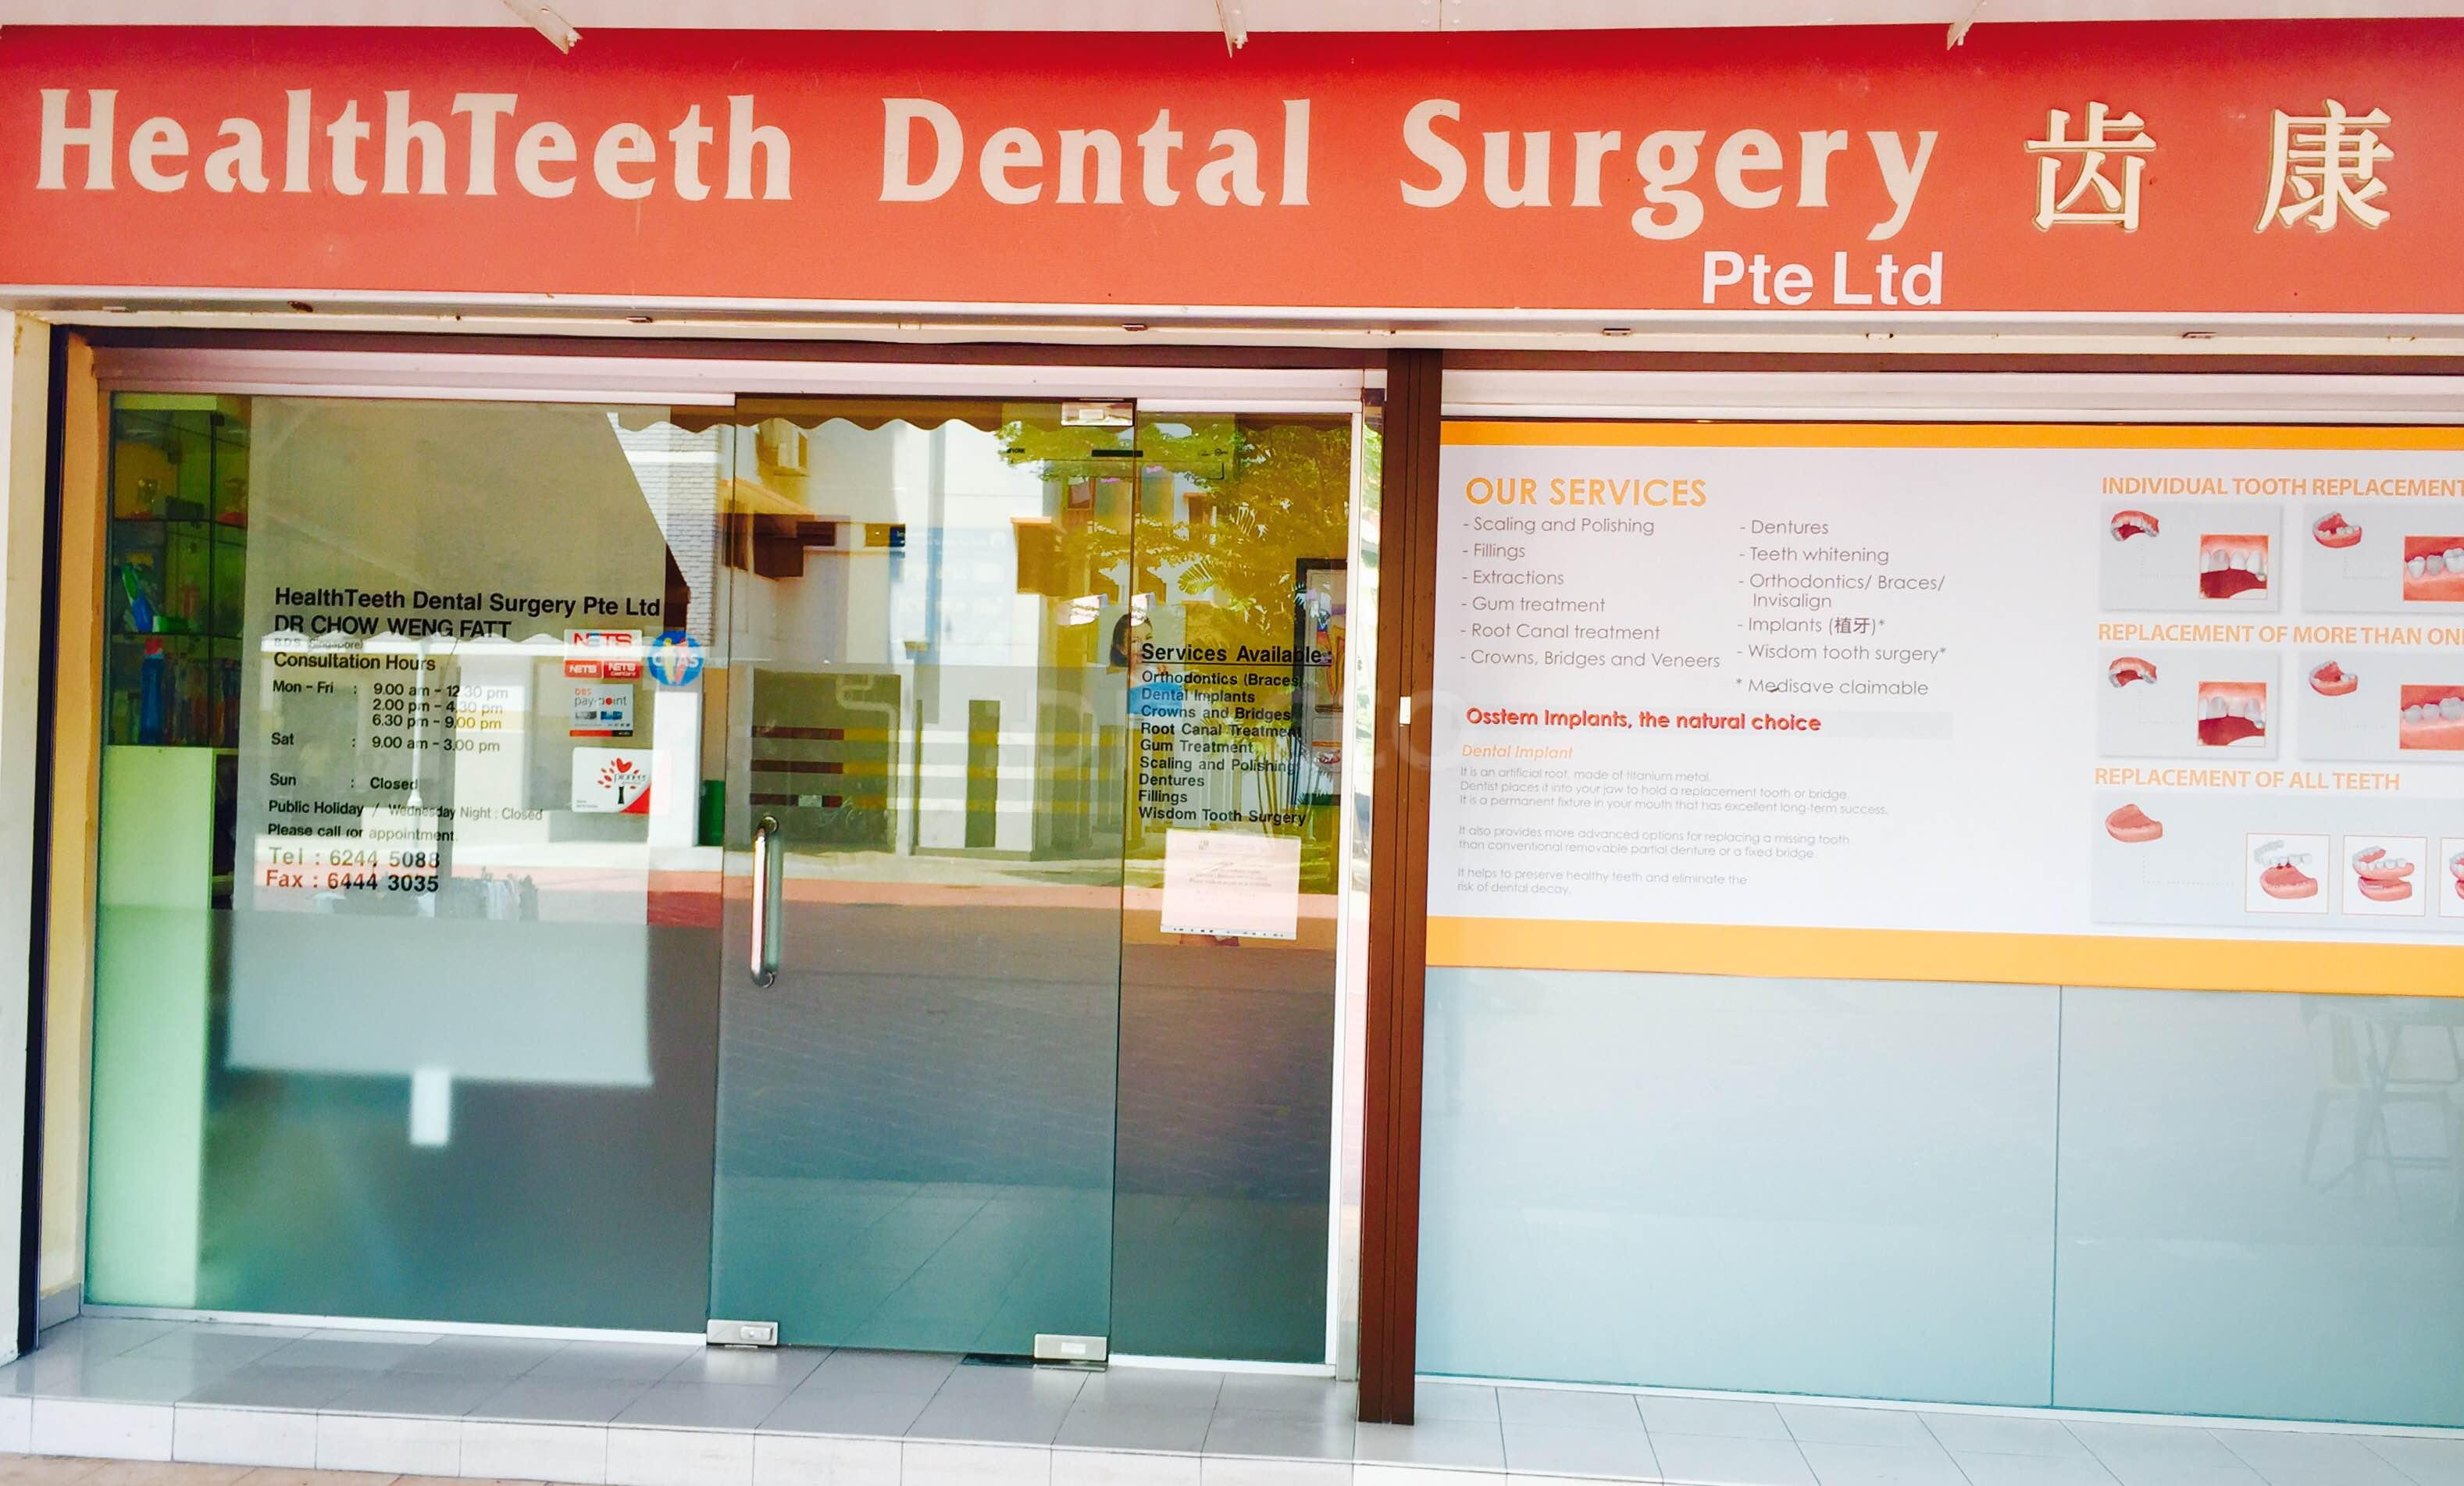 Dentists In Whampoa, Singapore - Instant Appointment Booking, View